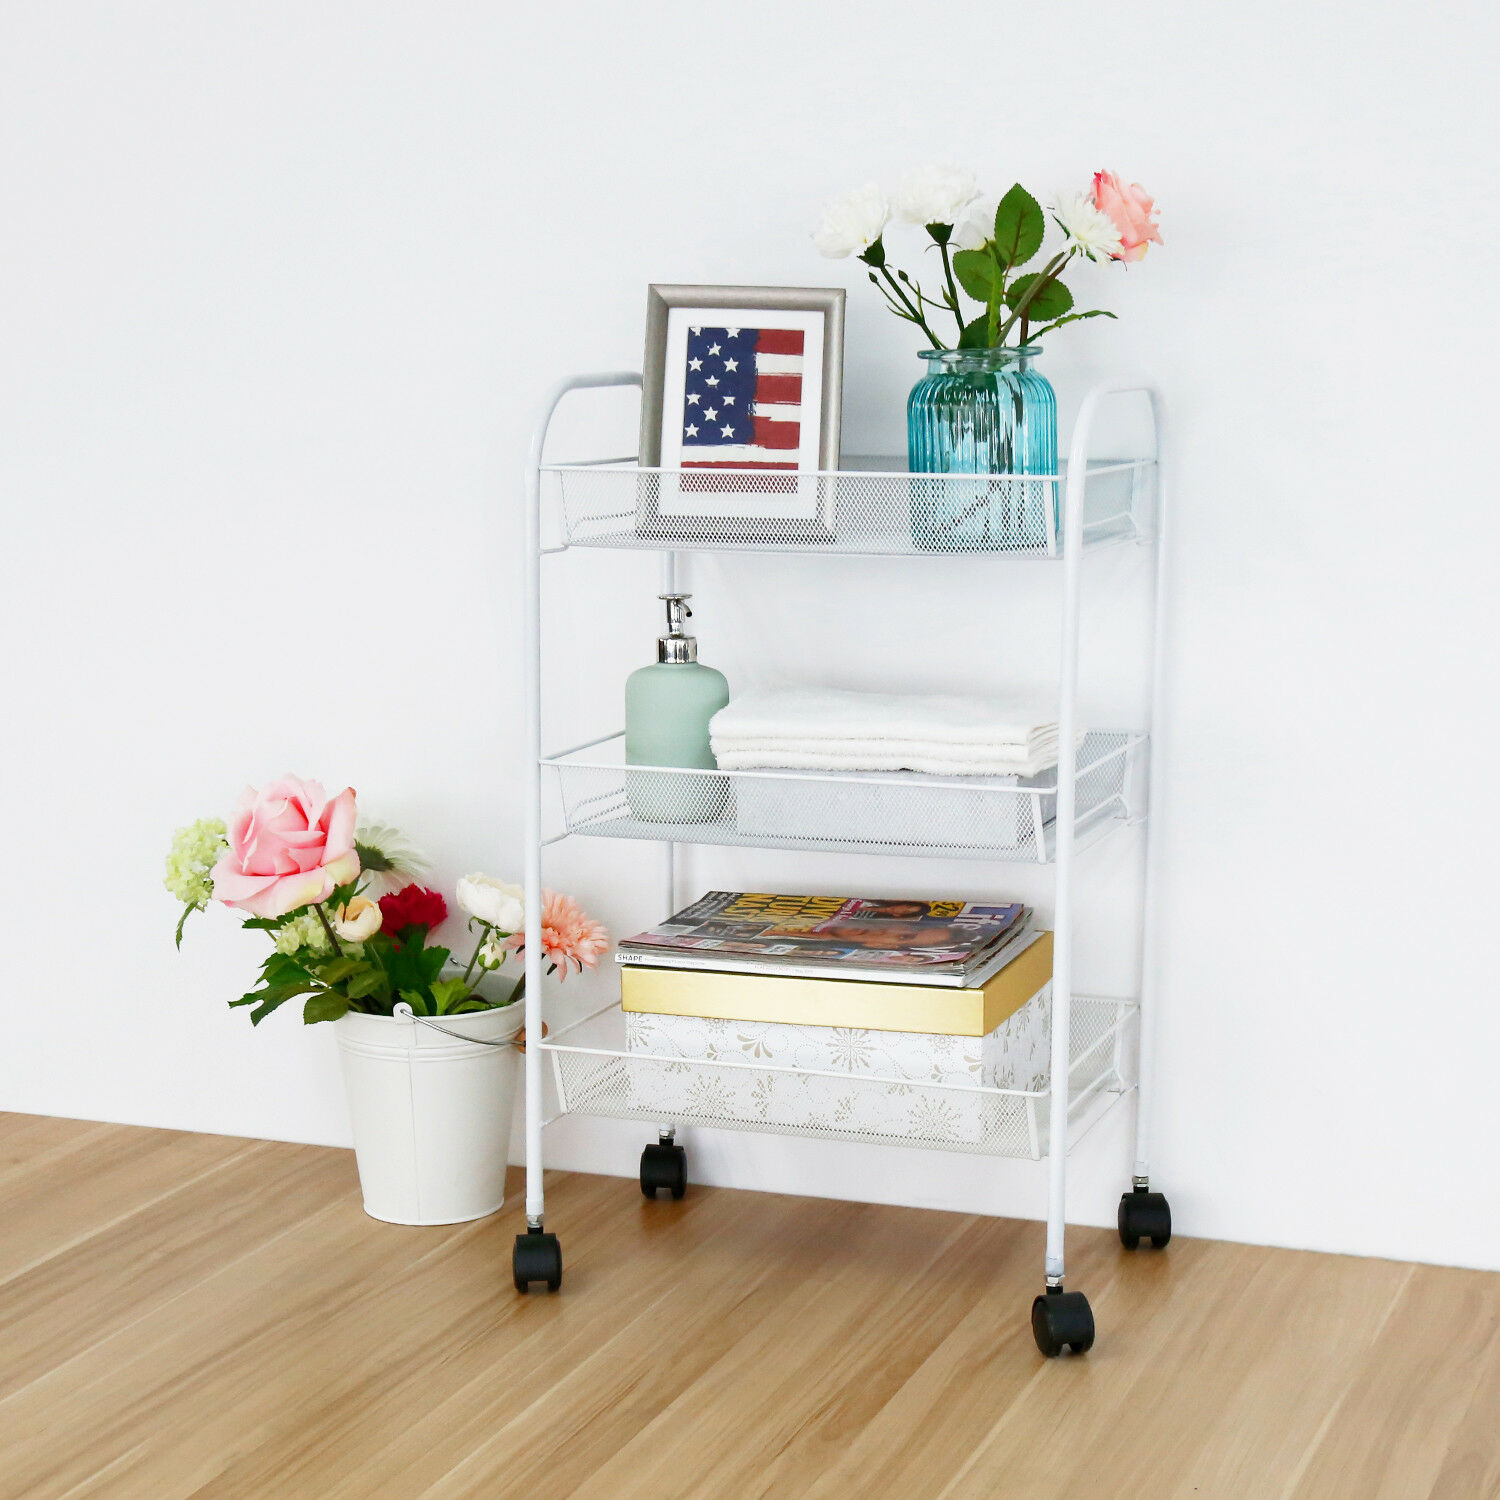 Kinbor 3 Piece Rolling Kitchen Island Portable Storage Trolley Cart Dining Table